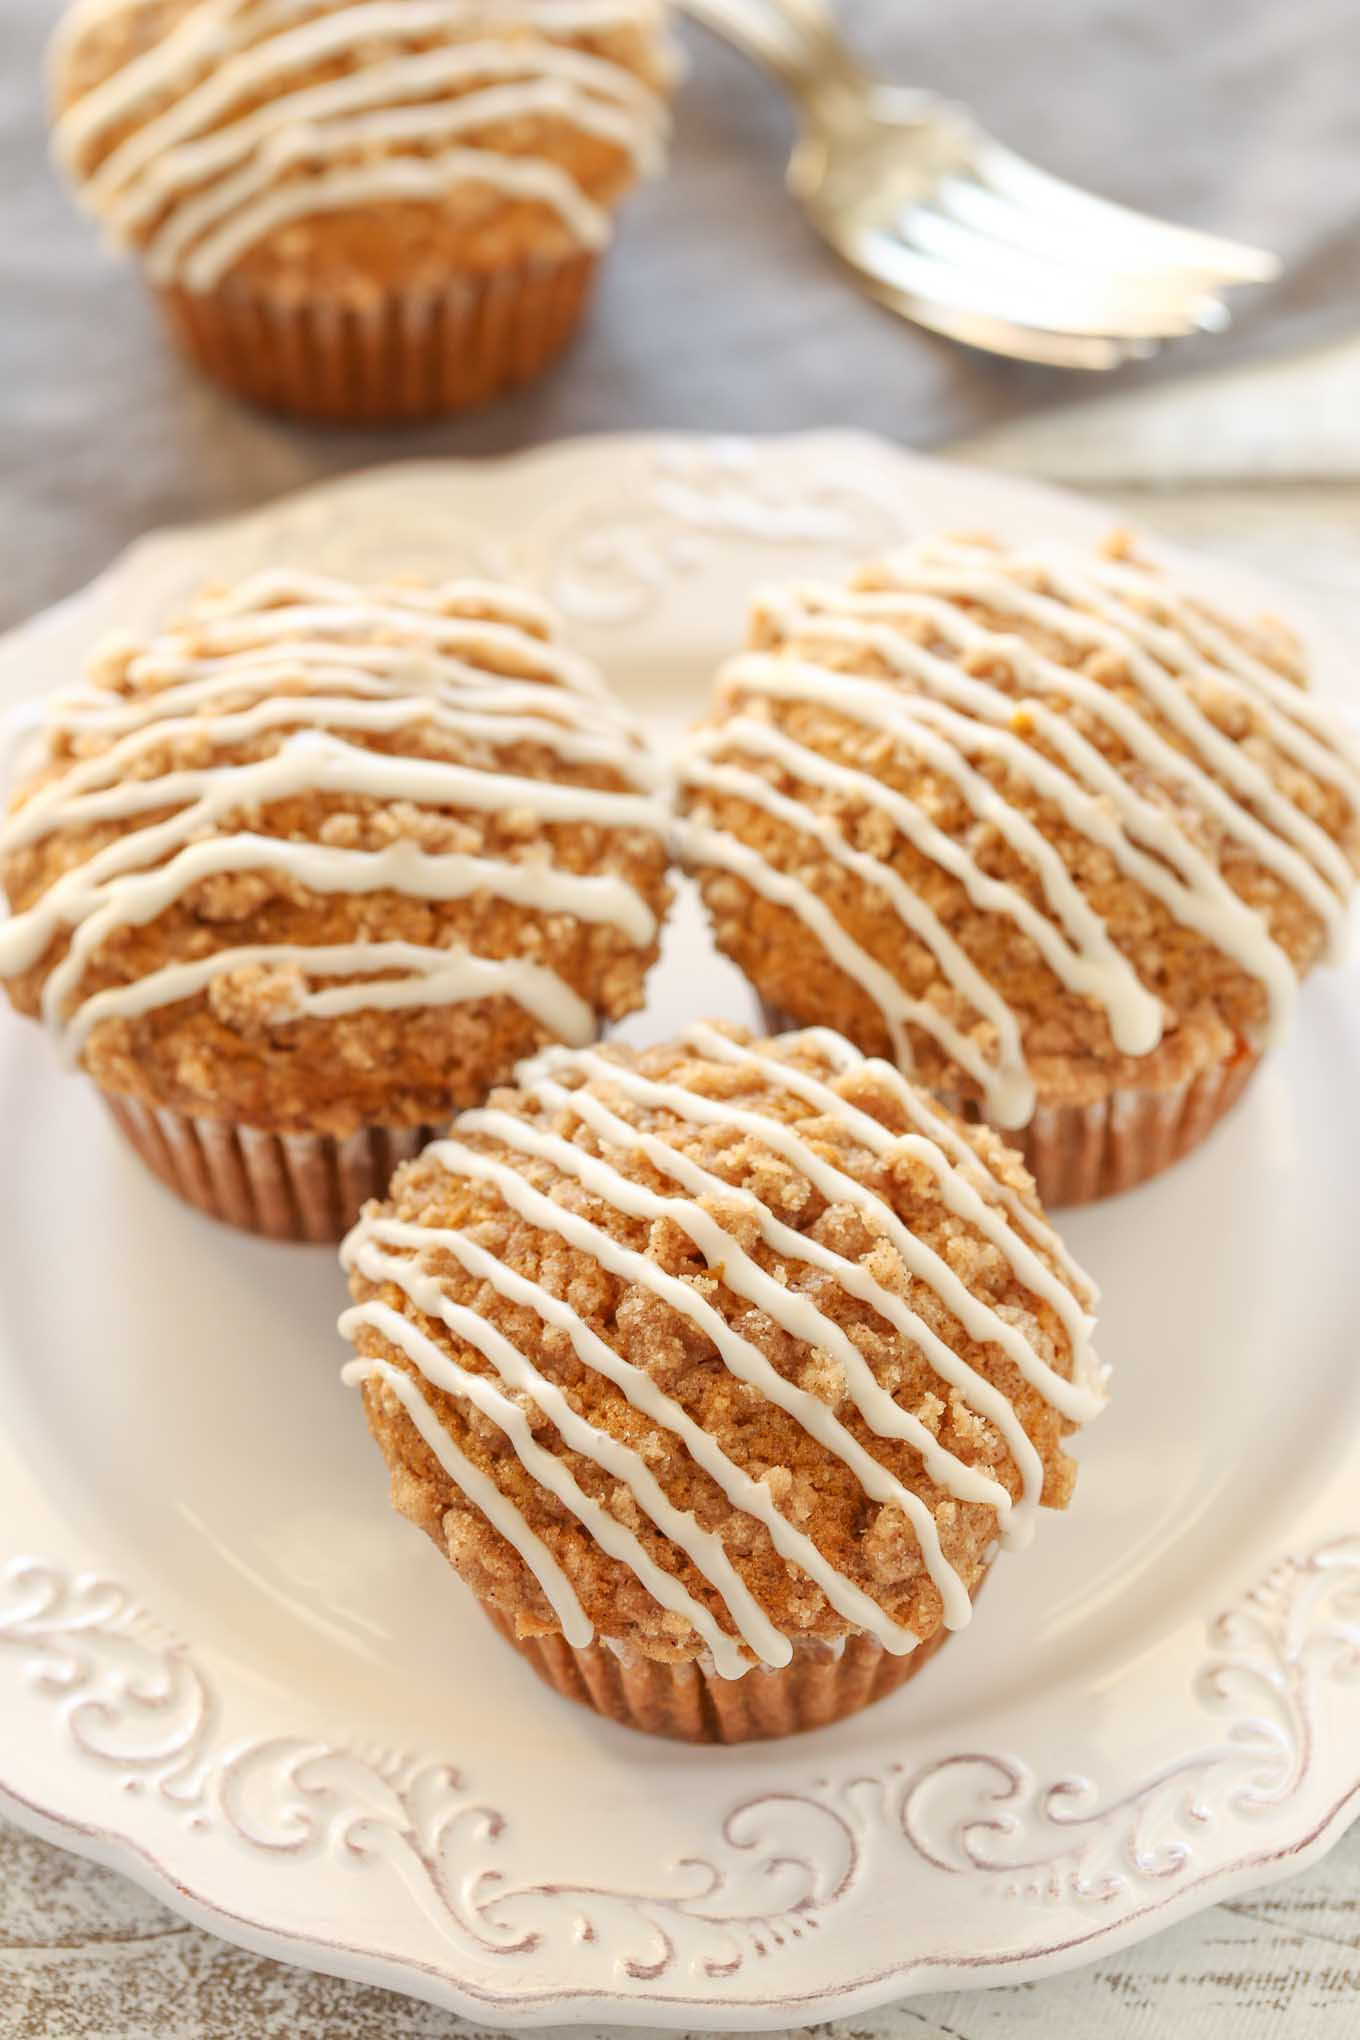 Three glazed pumpkin streusel muffins on a white plate. Another muffin and a fork rest in the background.